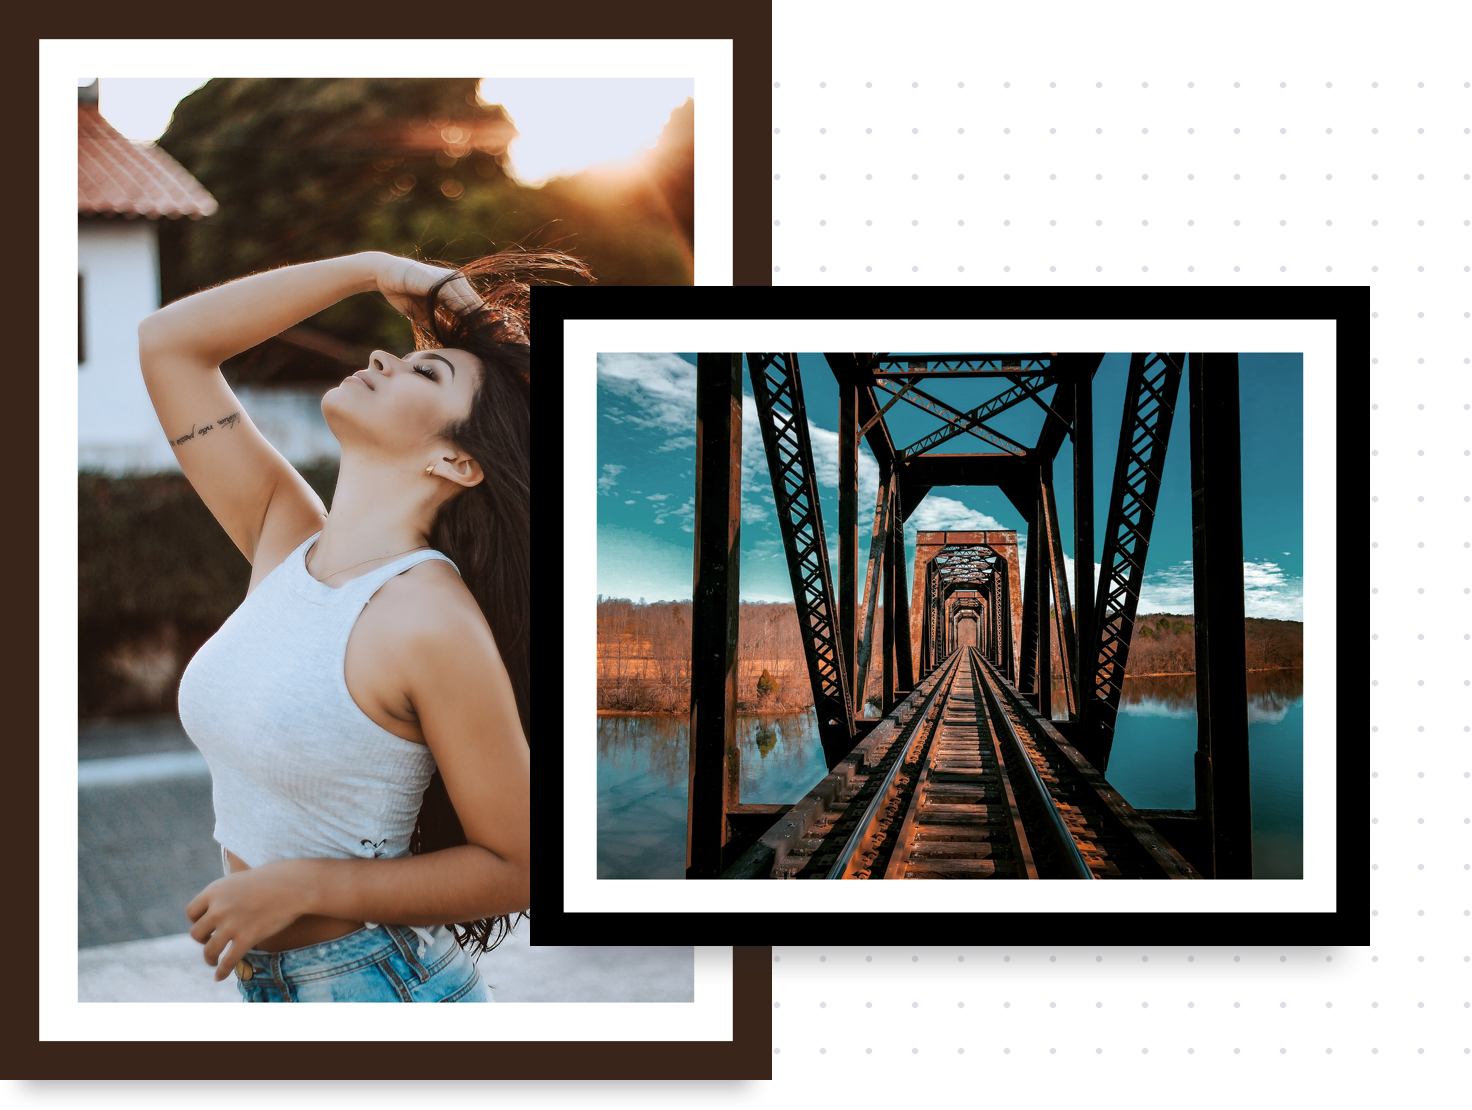 images?q=tbn:ANd9GcQh_l3eQ5xwiPy07kGEXjmjgmBKBRB7H2mRxCGhv1tFWg5c_mWT Awesome Photography Definition Of Framing @http://capturingmomentsphotography.net.info